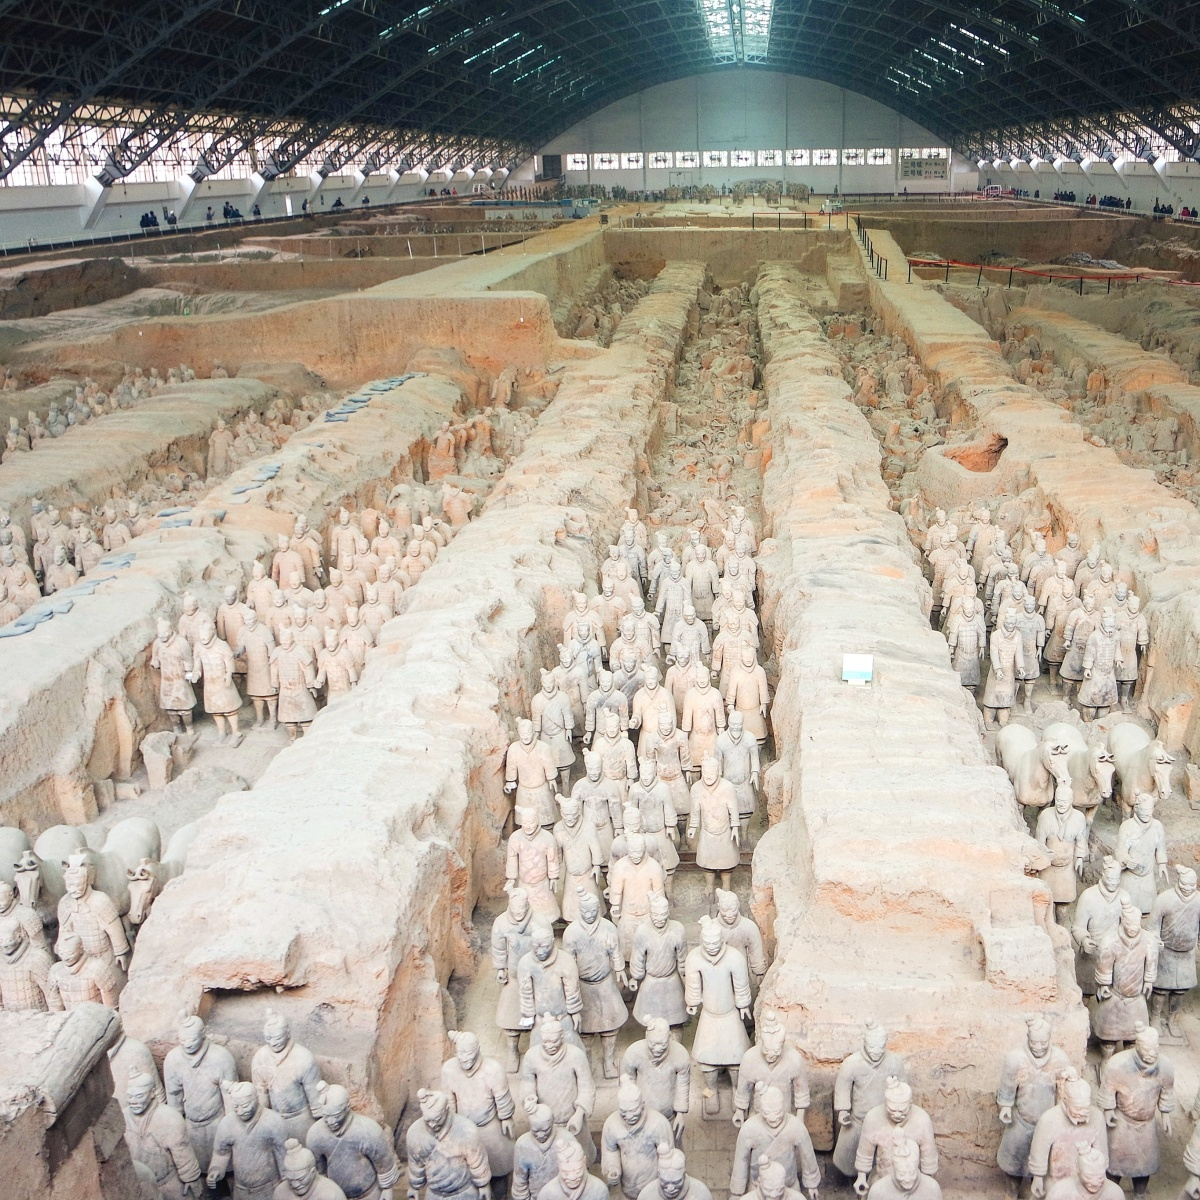 Xi'An Day 2: The Terracotta Warriors - Do's and Don'ts